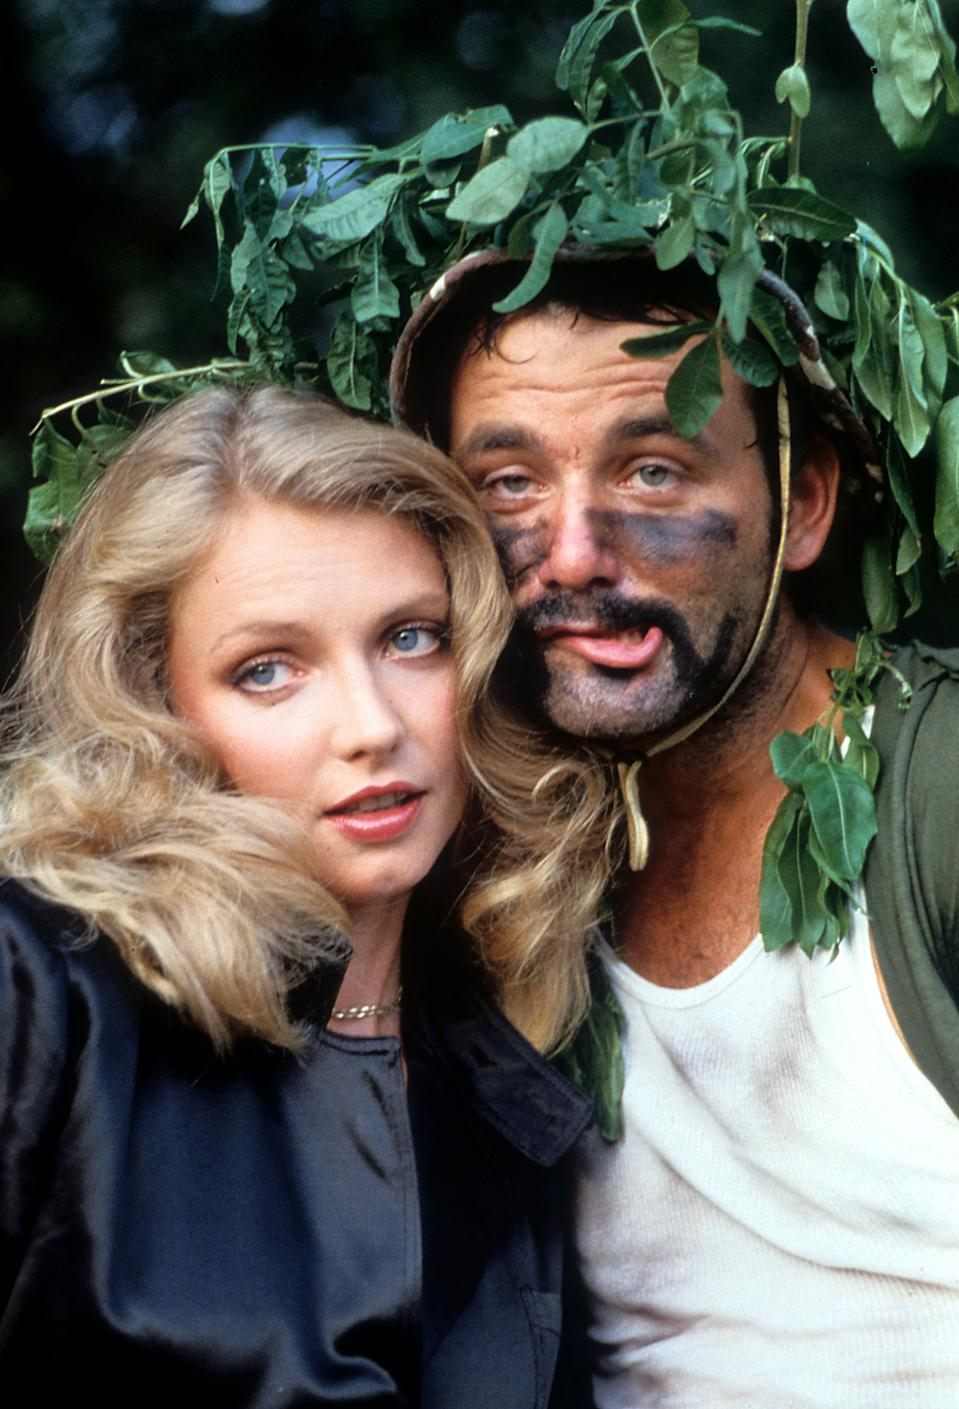 Cindy Morgan and Bill Murray nestled behind a tree in a scene from the film 'Caddyshack', 1980. (Photo by Orion Pictures/Getty Images)